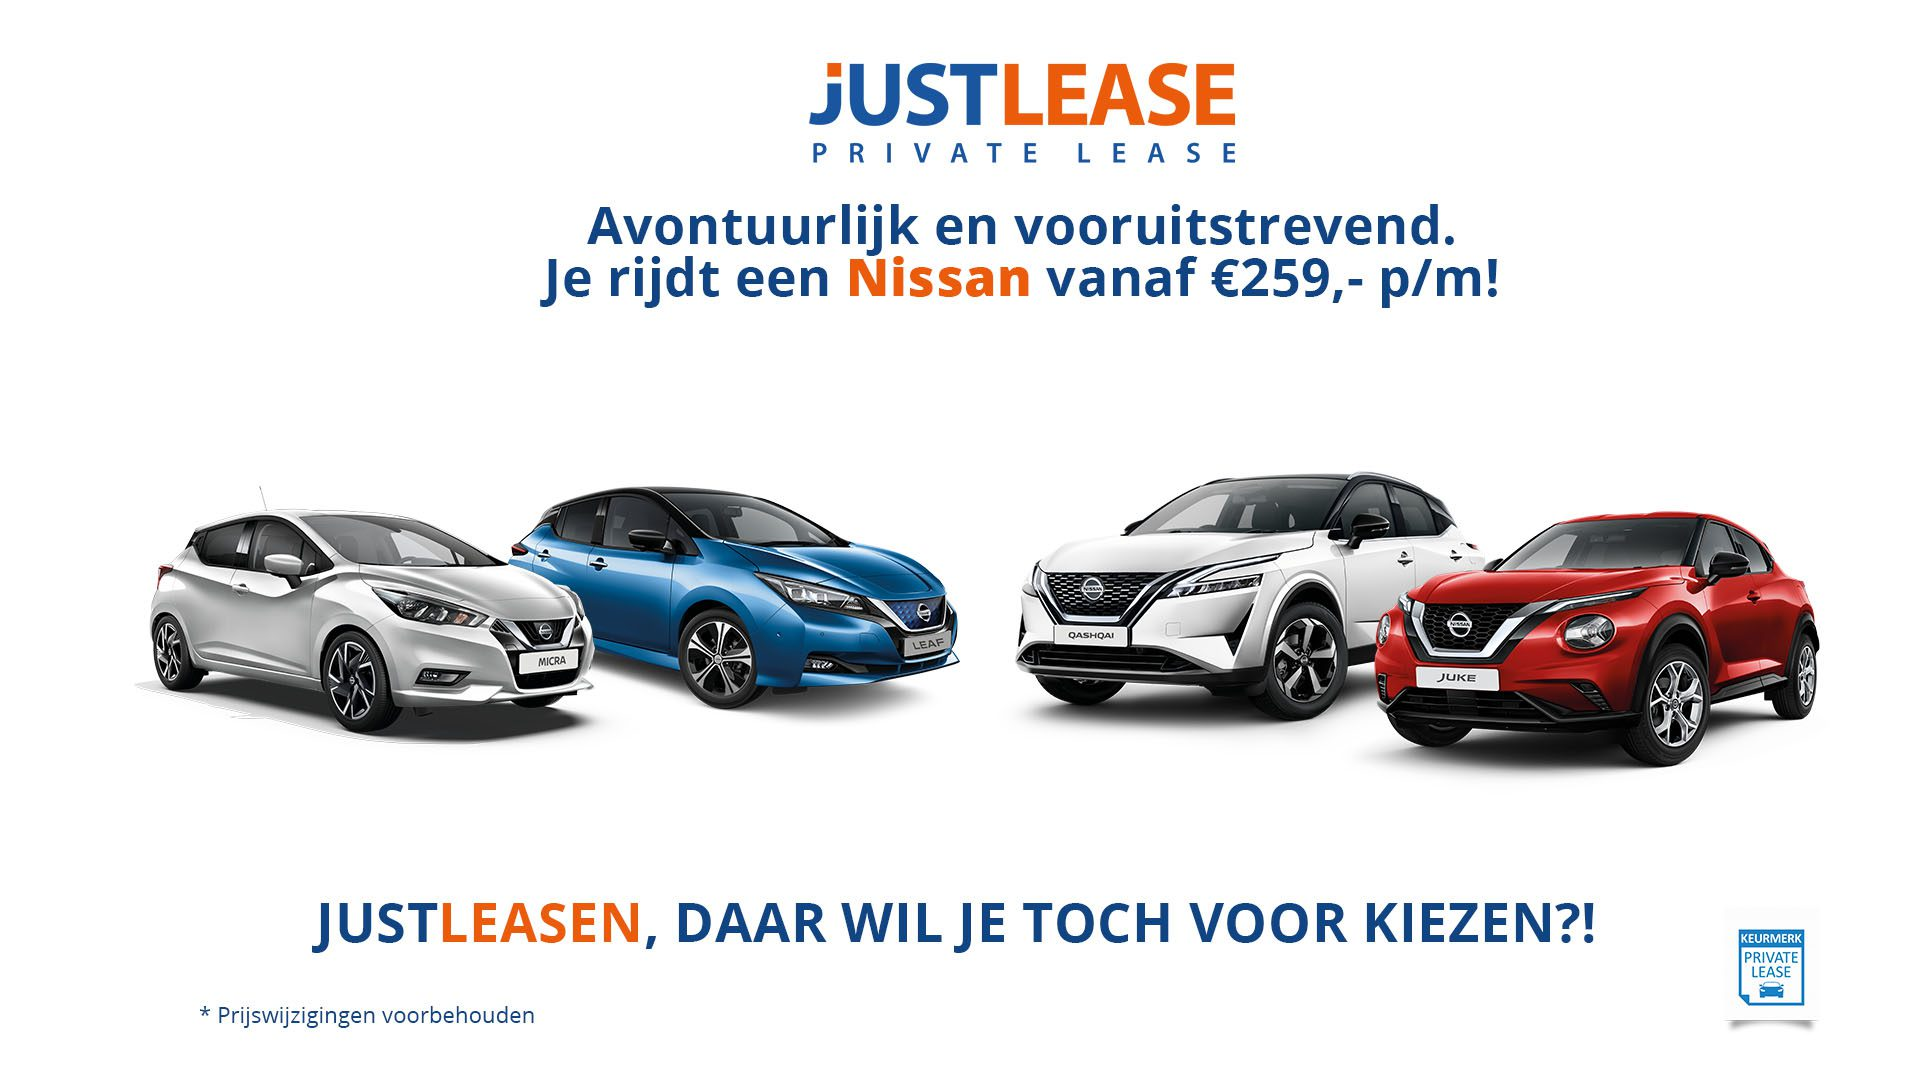 JustLease Private Lease Actie